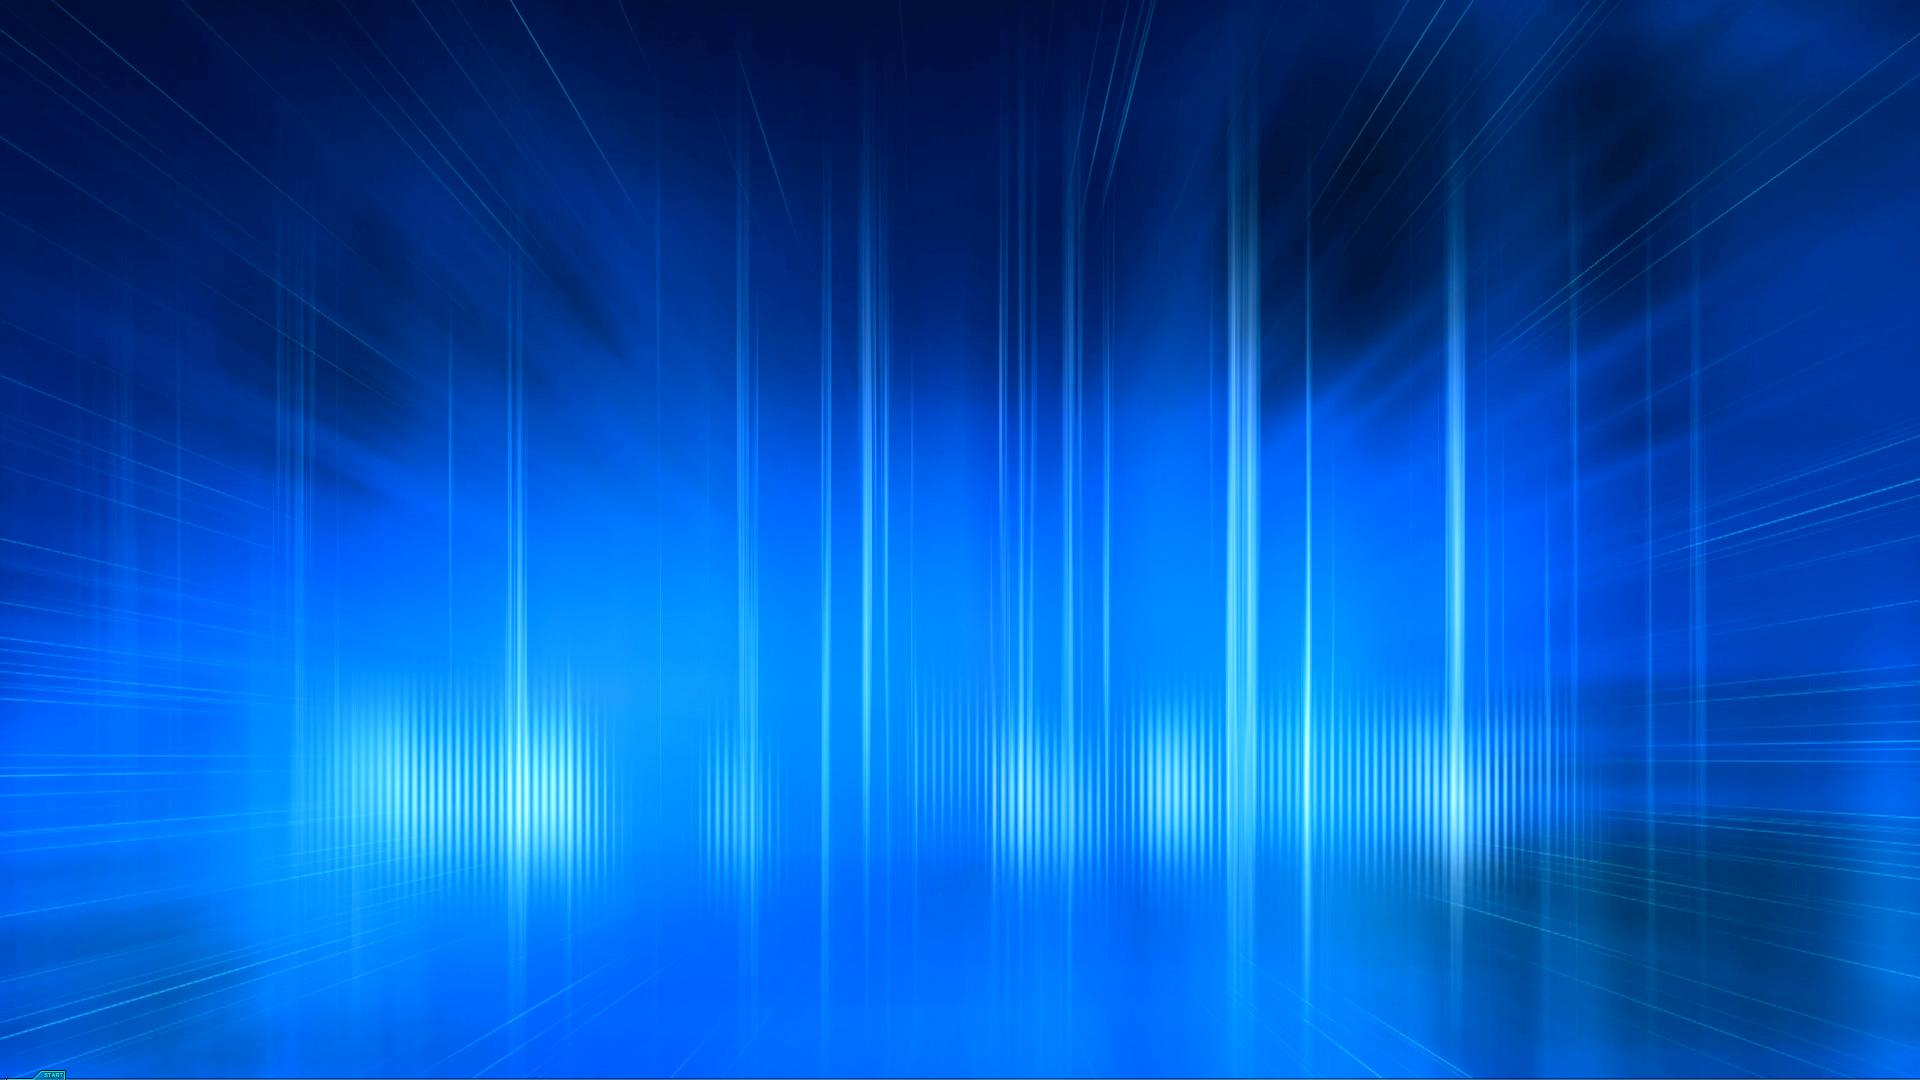 Abstract Technology Wallpapers Top Free Abstract